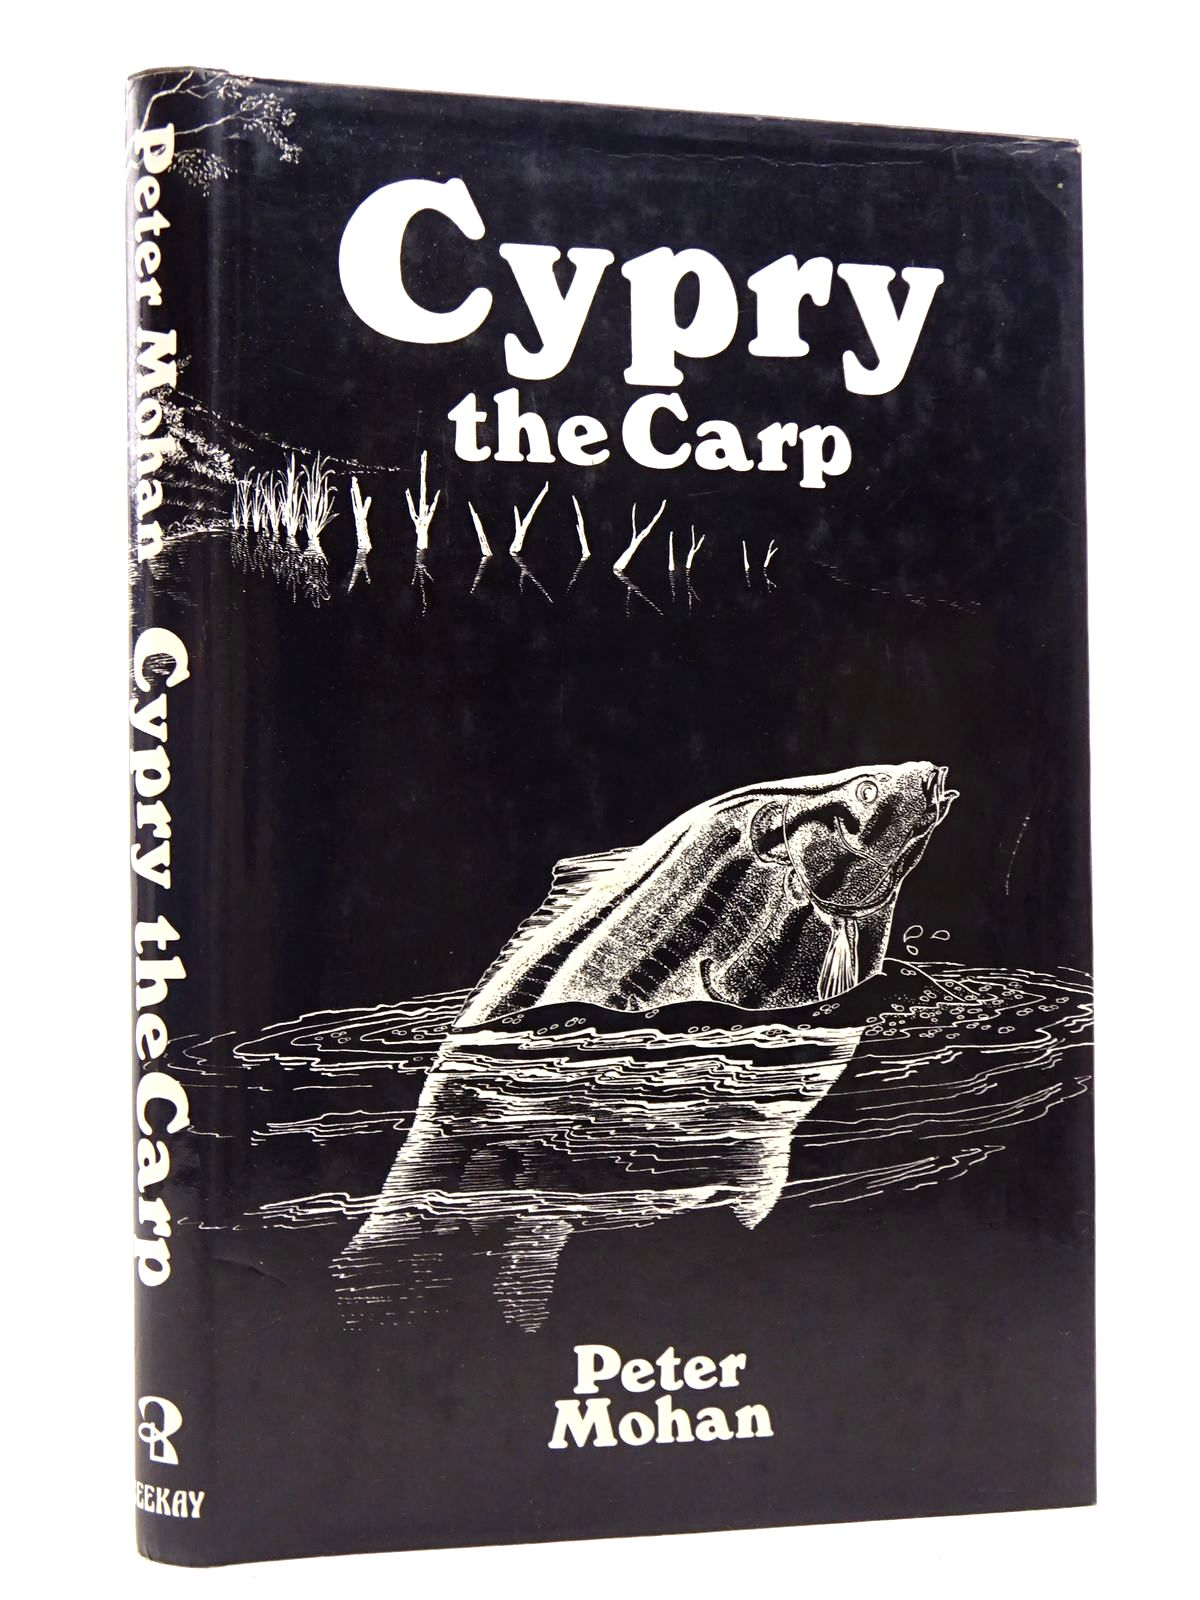 Photo of CYPRY: THE STORY OF A CARP written by Mohan, Peter illustrated by Gurd, Len published by Beekay Publishers (STOCK CODE: 1817644)  for sale by Stella & Rose's Books